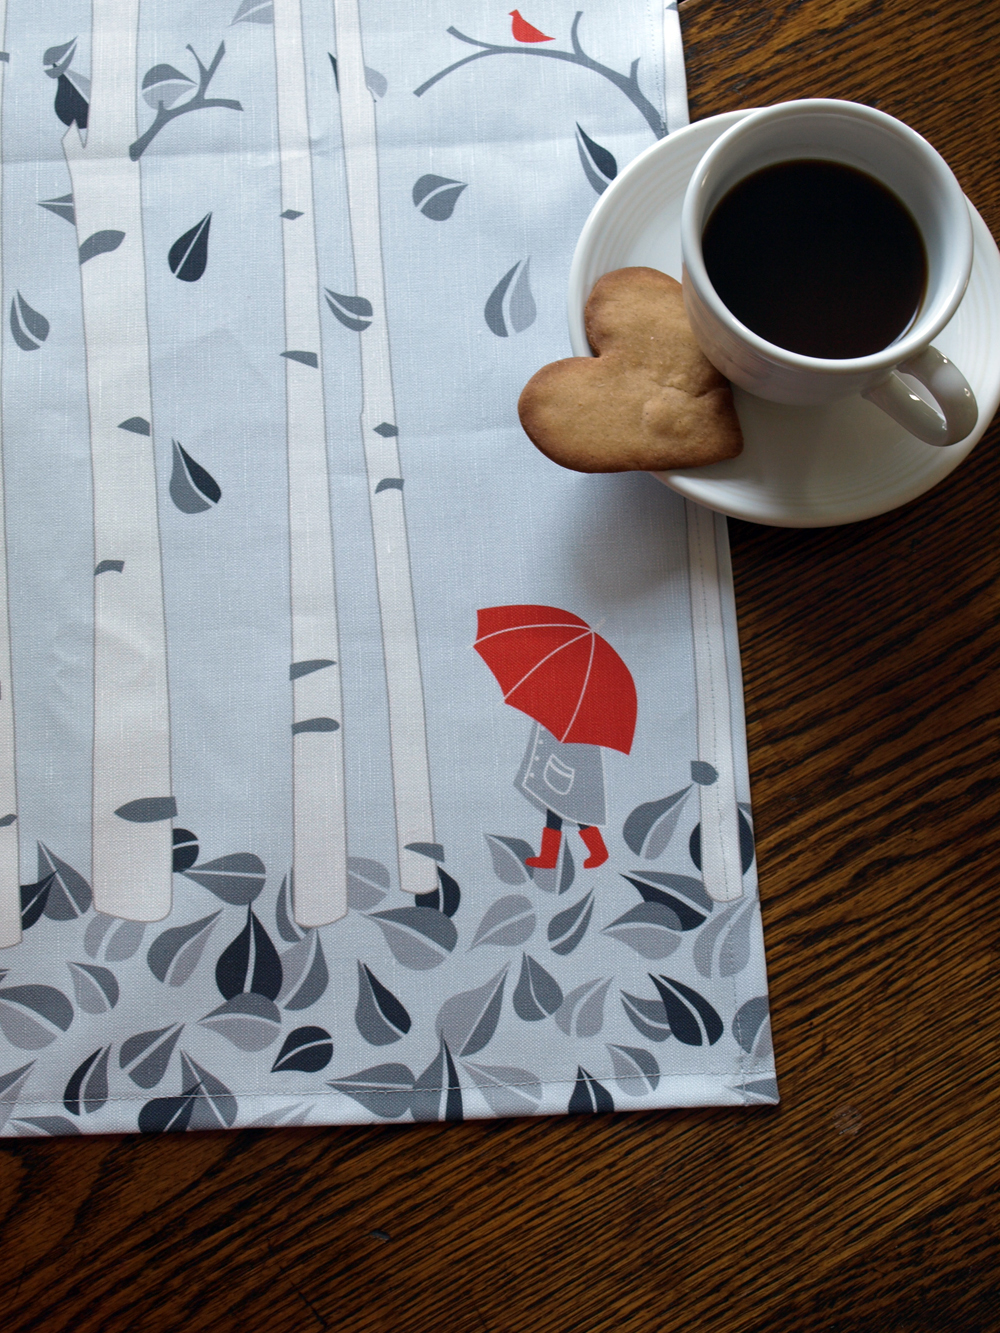 After many, many requests at the Swedish Yuletide Market in Boston, I now offer my birch tree pattern as a tea towel (16x25 inches). Thank you all for the suggestion!   (See another design you would like in a different product than we offer?  Weigh in on our facebook page !)